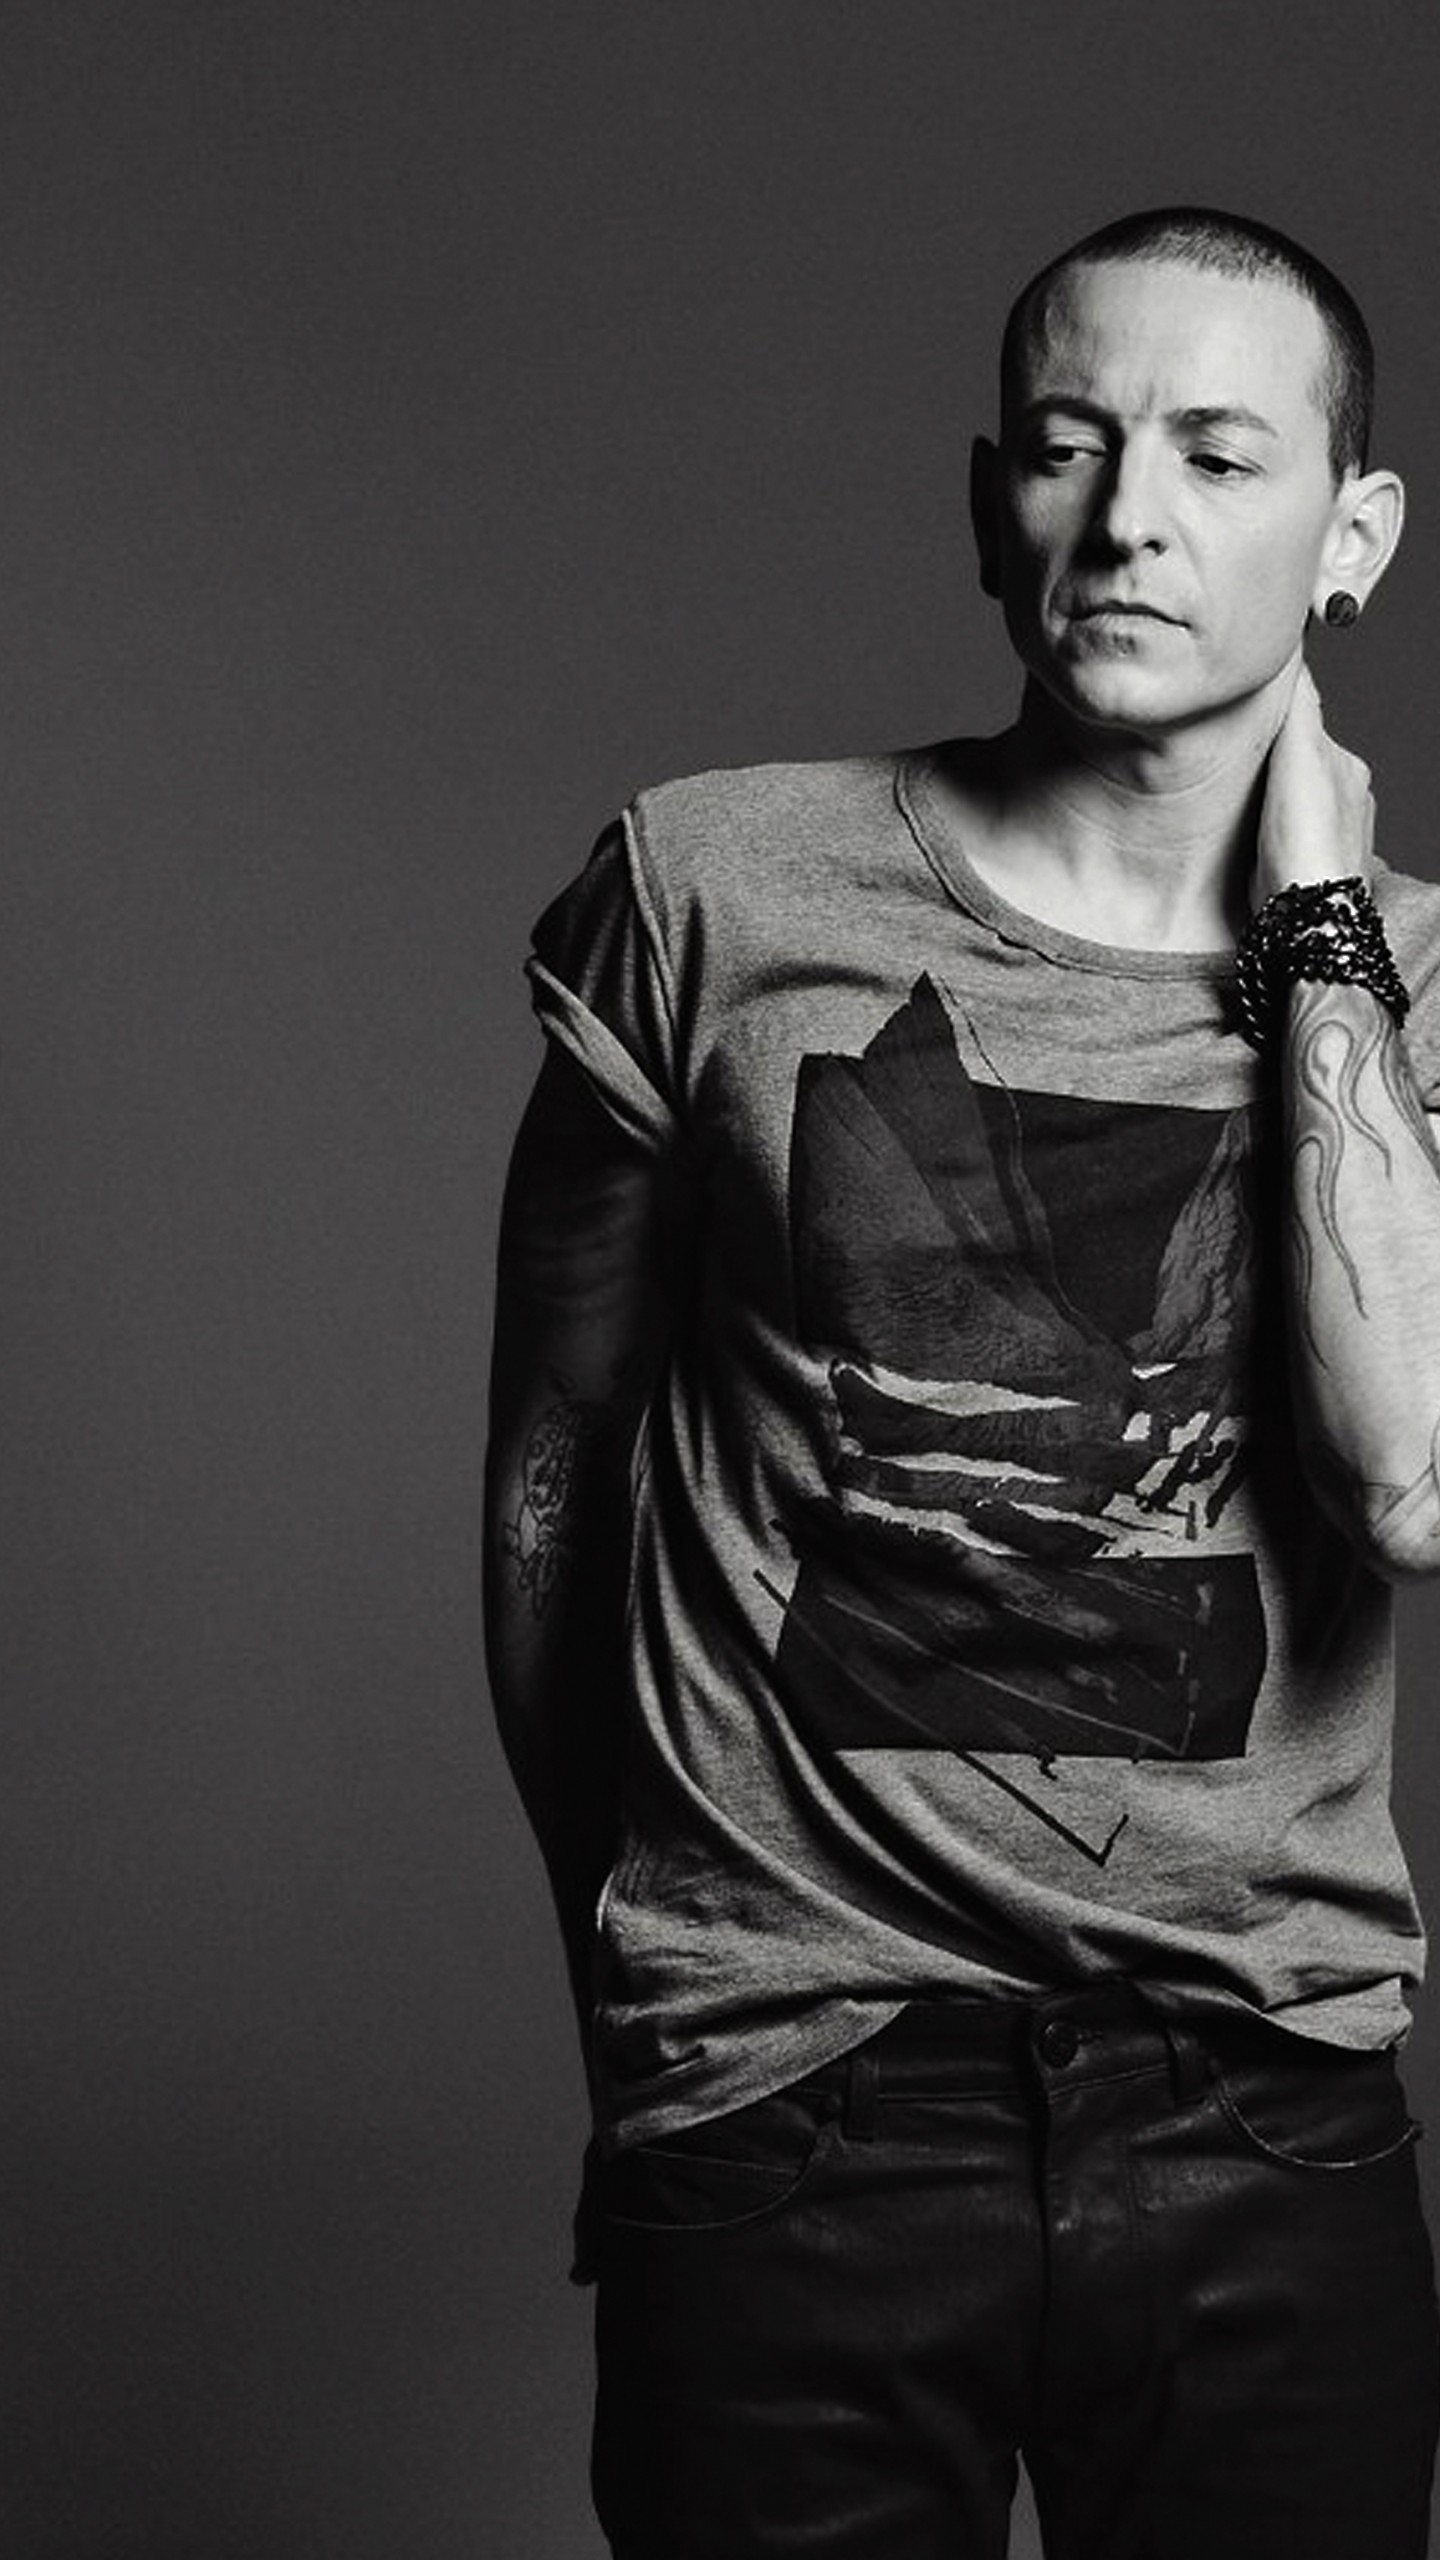 Iphone Wallpaper Pinterest Quotes Wallpaper Chester Bennington Photo 5k Celebrities 14733